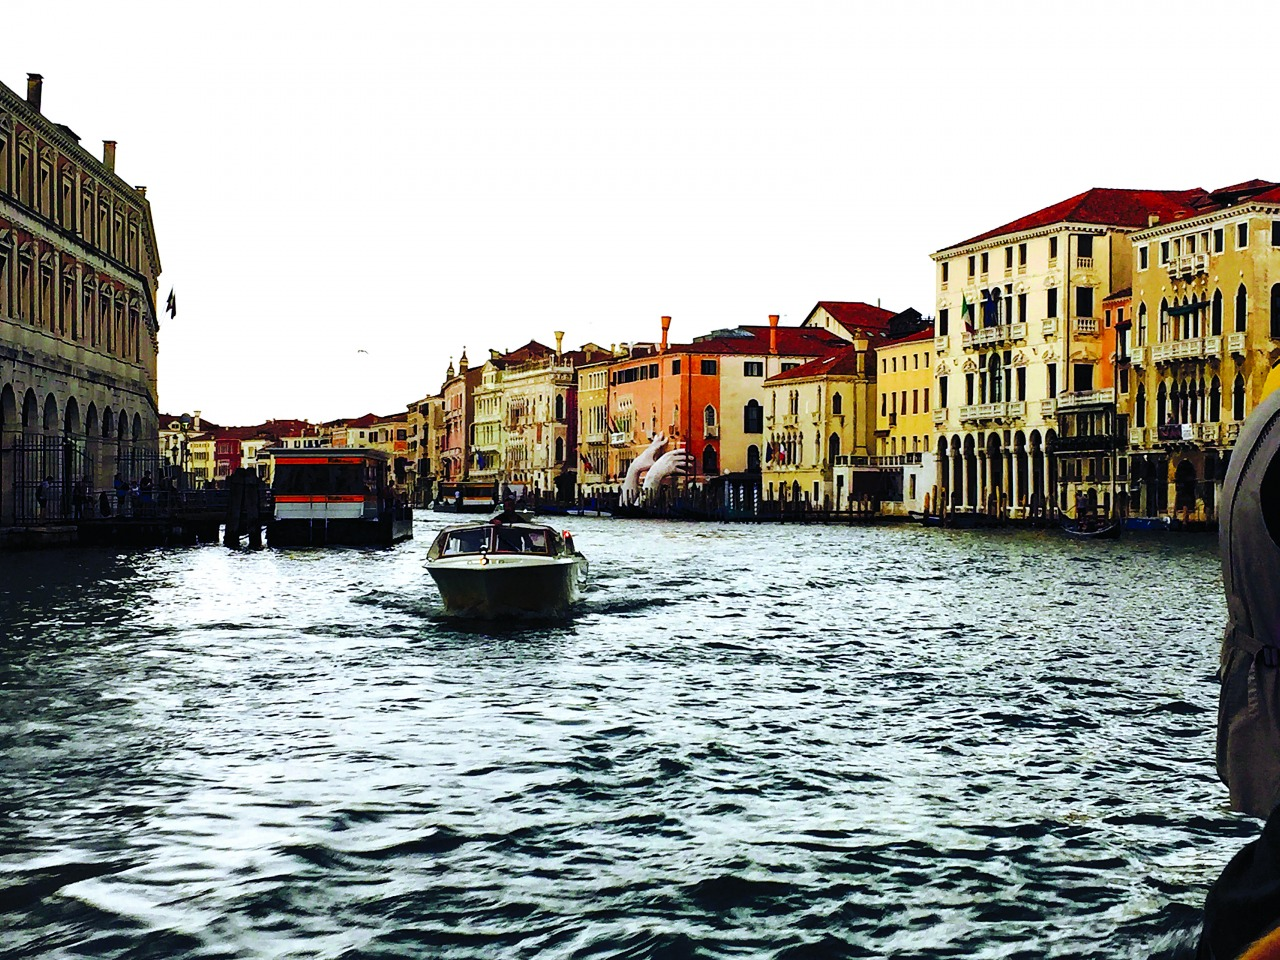 Palacetes - Grand Canal